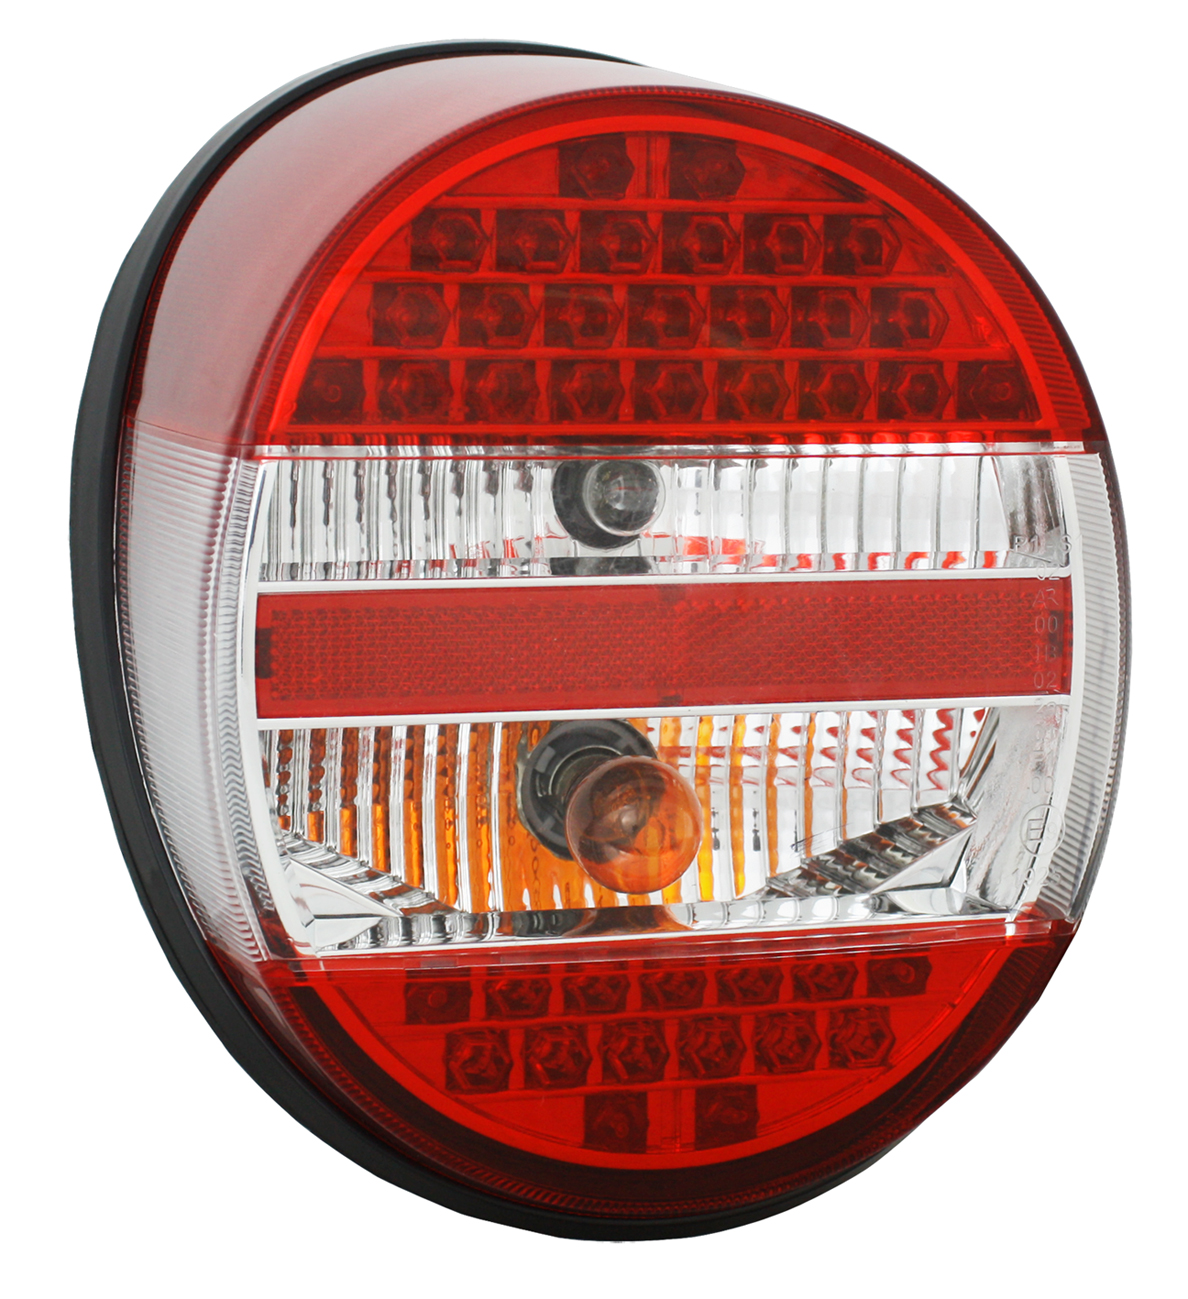 1973 Volkswagen Beetle Tail Lights Vw Light Wiring Diagram Taillight